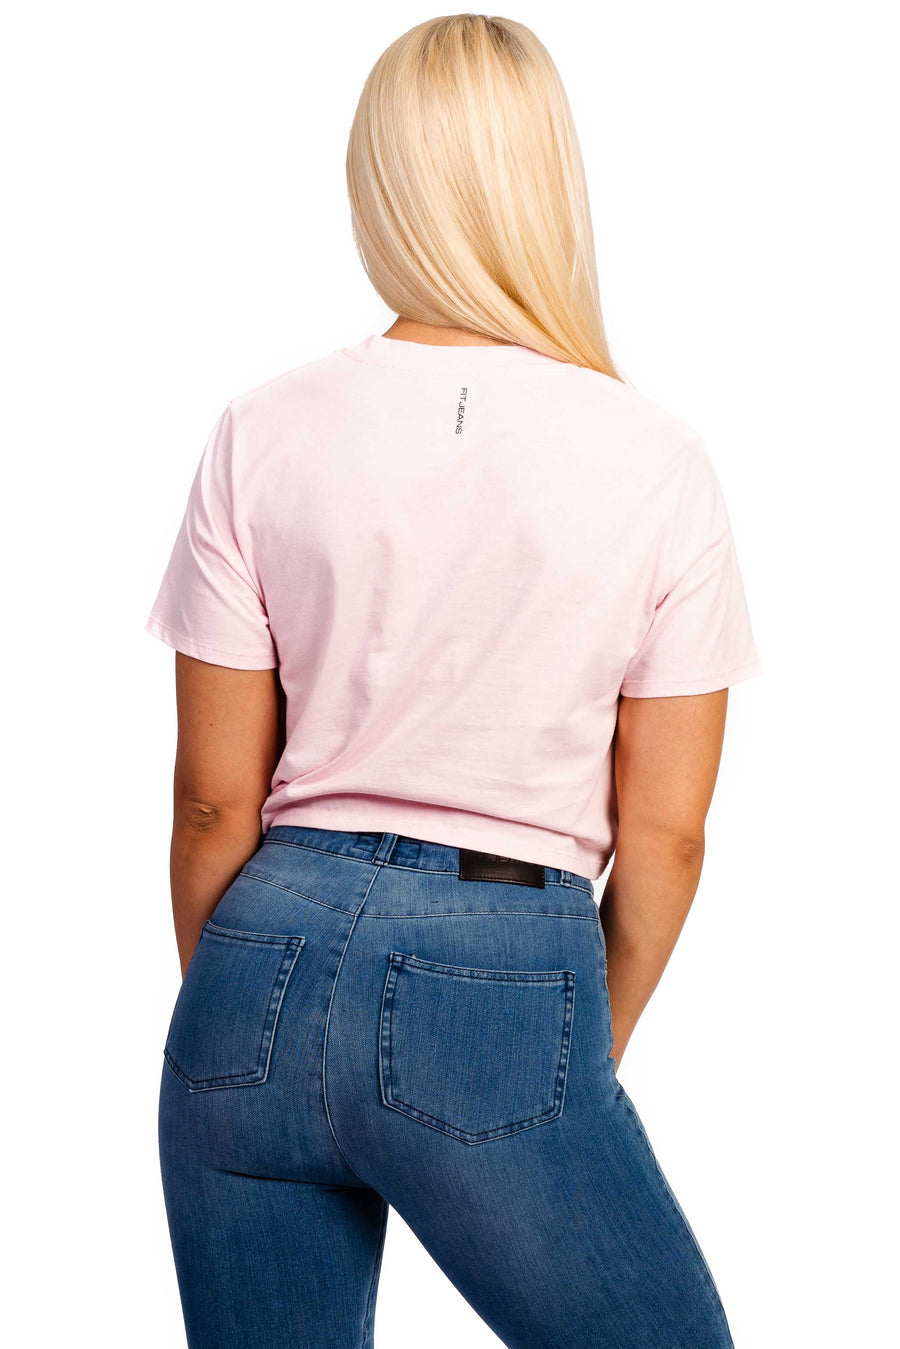 Womens Cropped T-Shirt - Pastel Pink